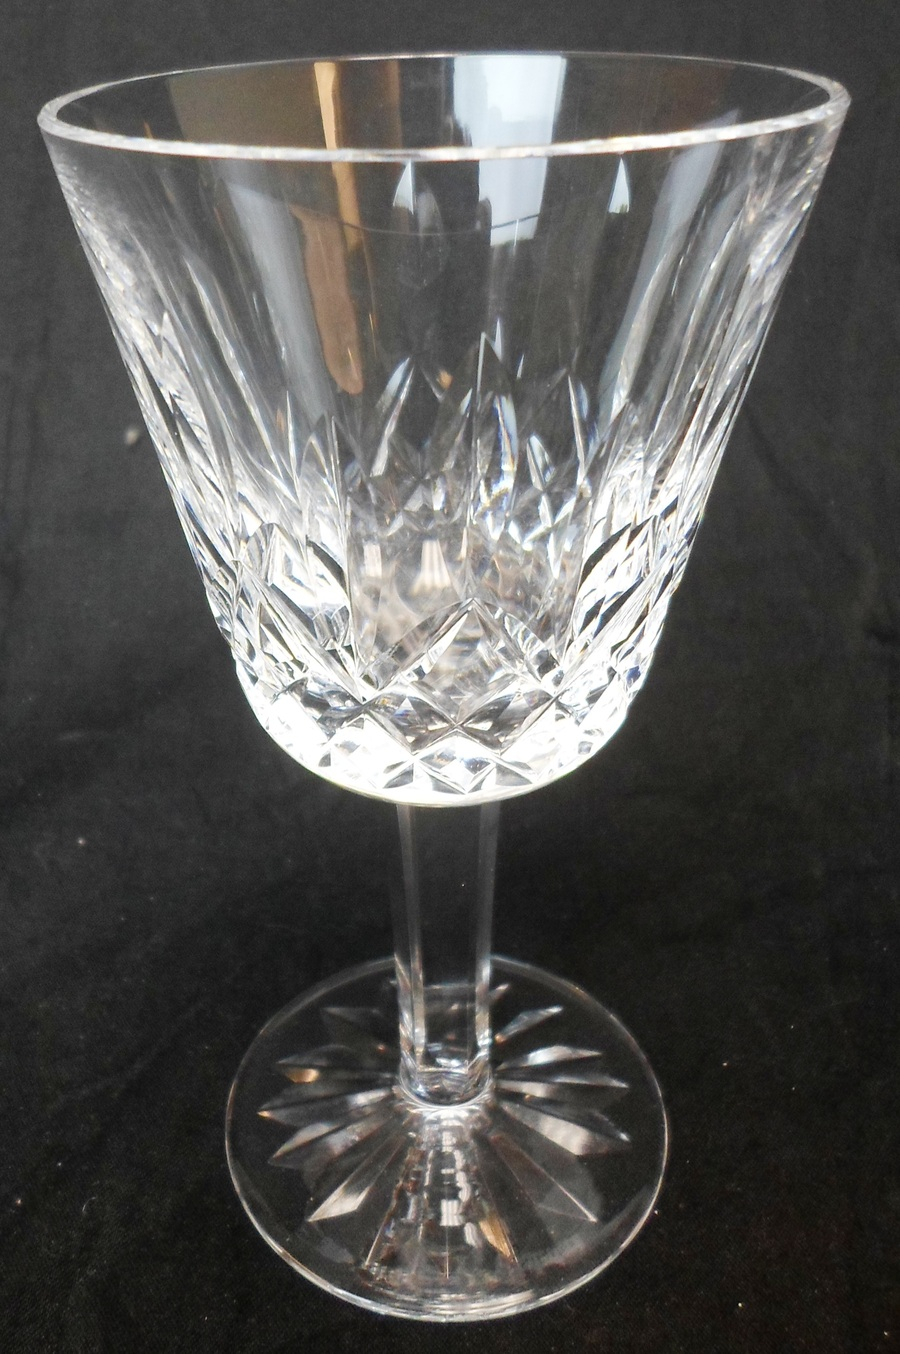 7 waterford crystal lismore claret wine glasses ebay - Wedgwood crystal wine glasses ...